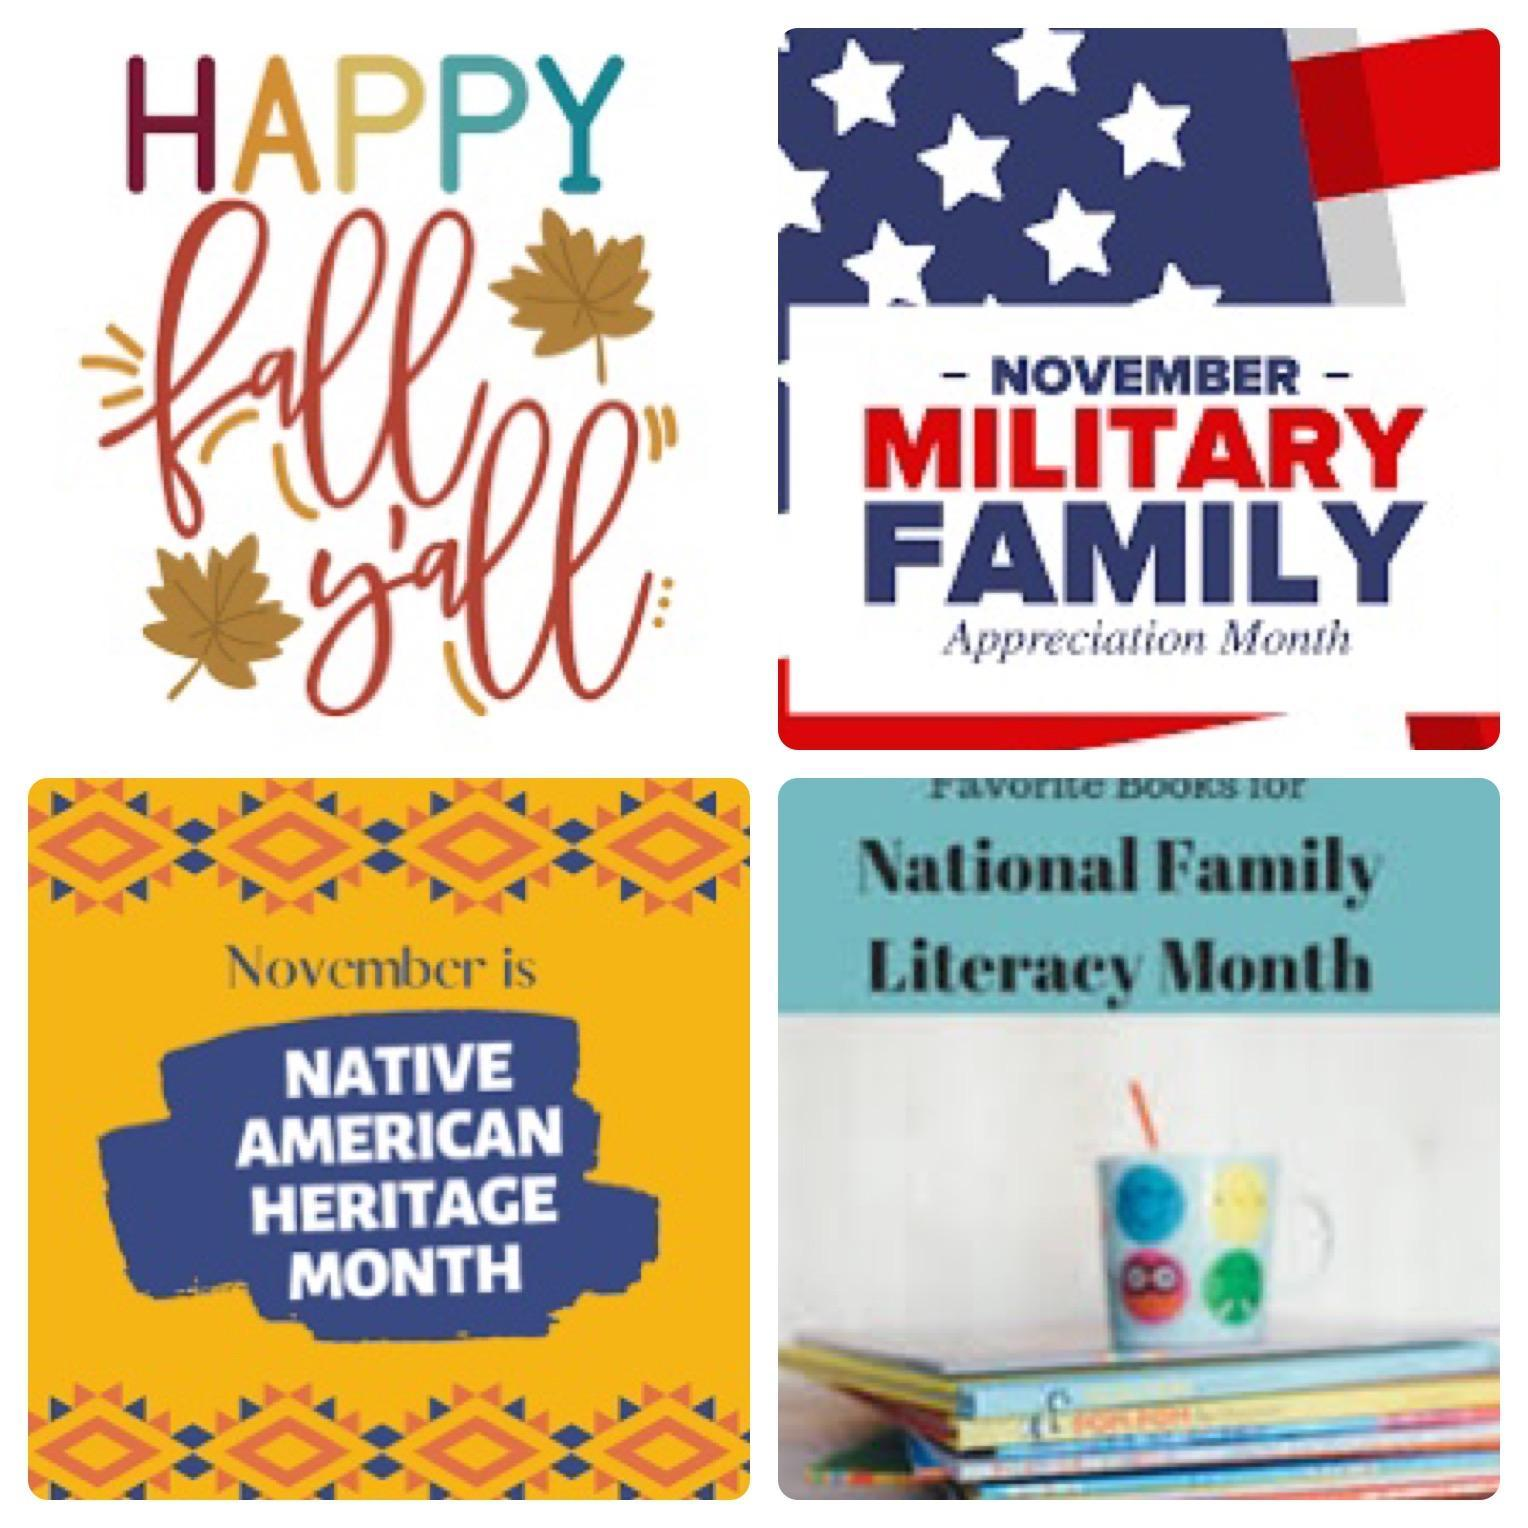 November Month Celebrations Pic Collage: Happy Fall, Military Family Month, Native American Heritage Month, and National Family Literacy Month